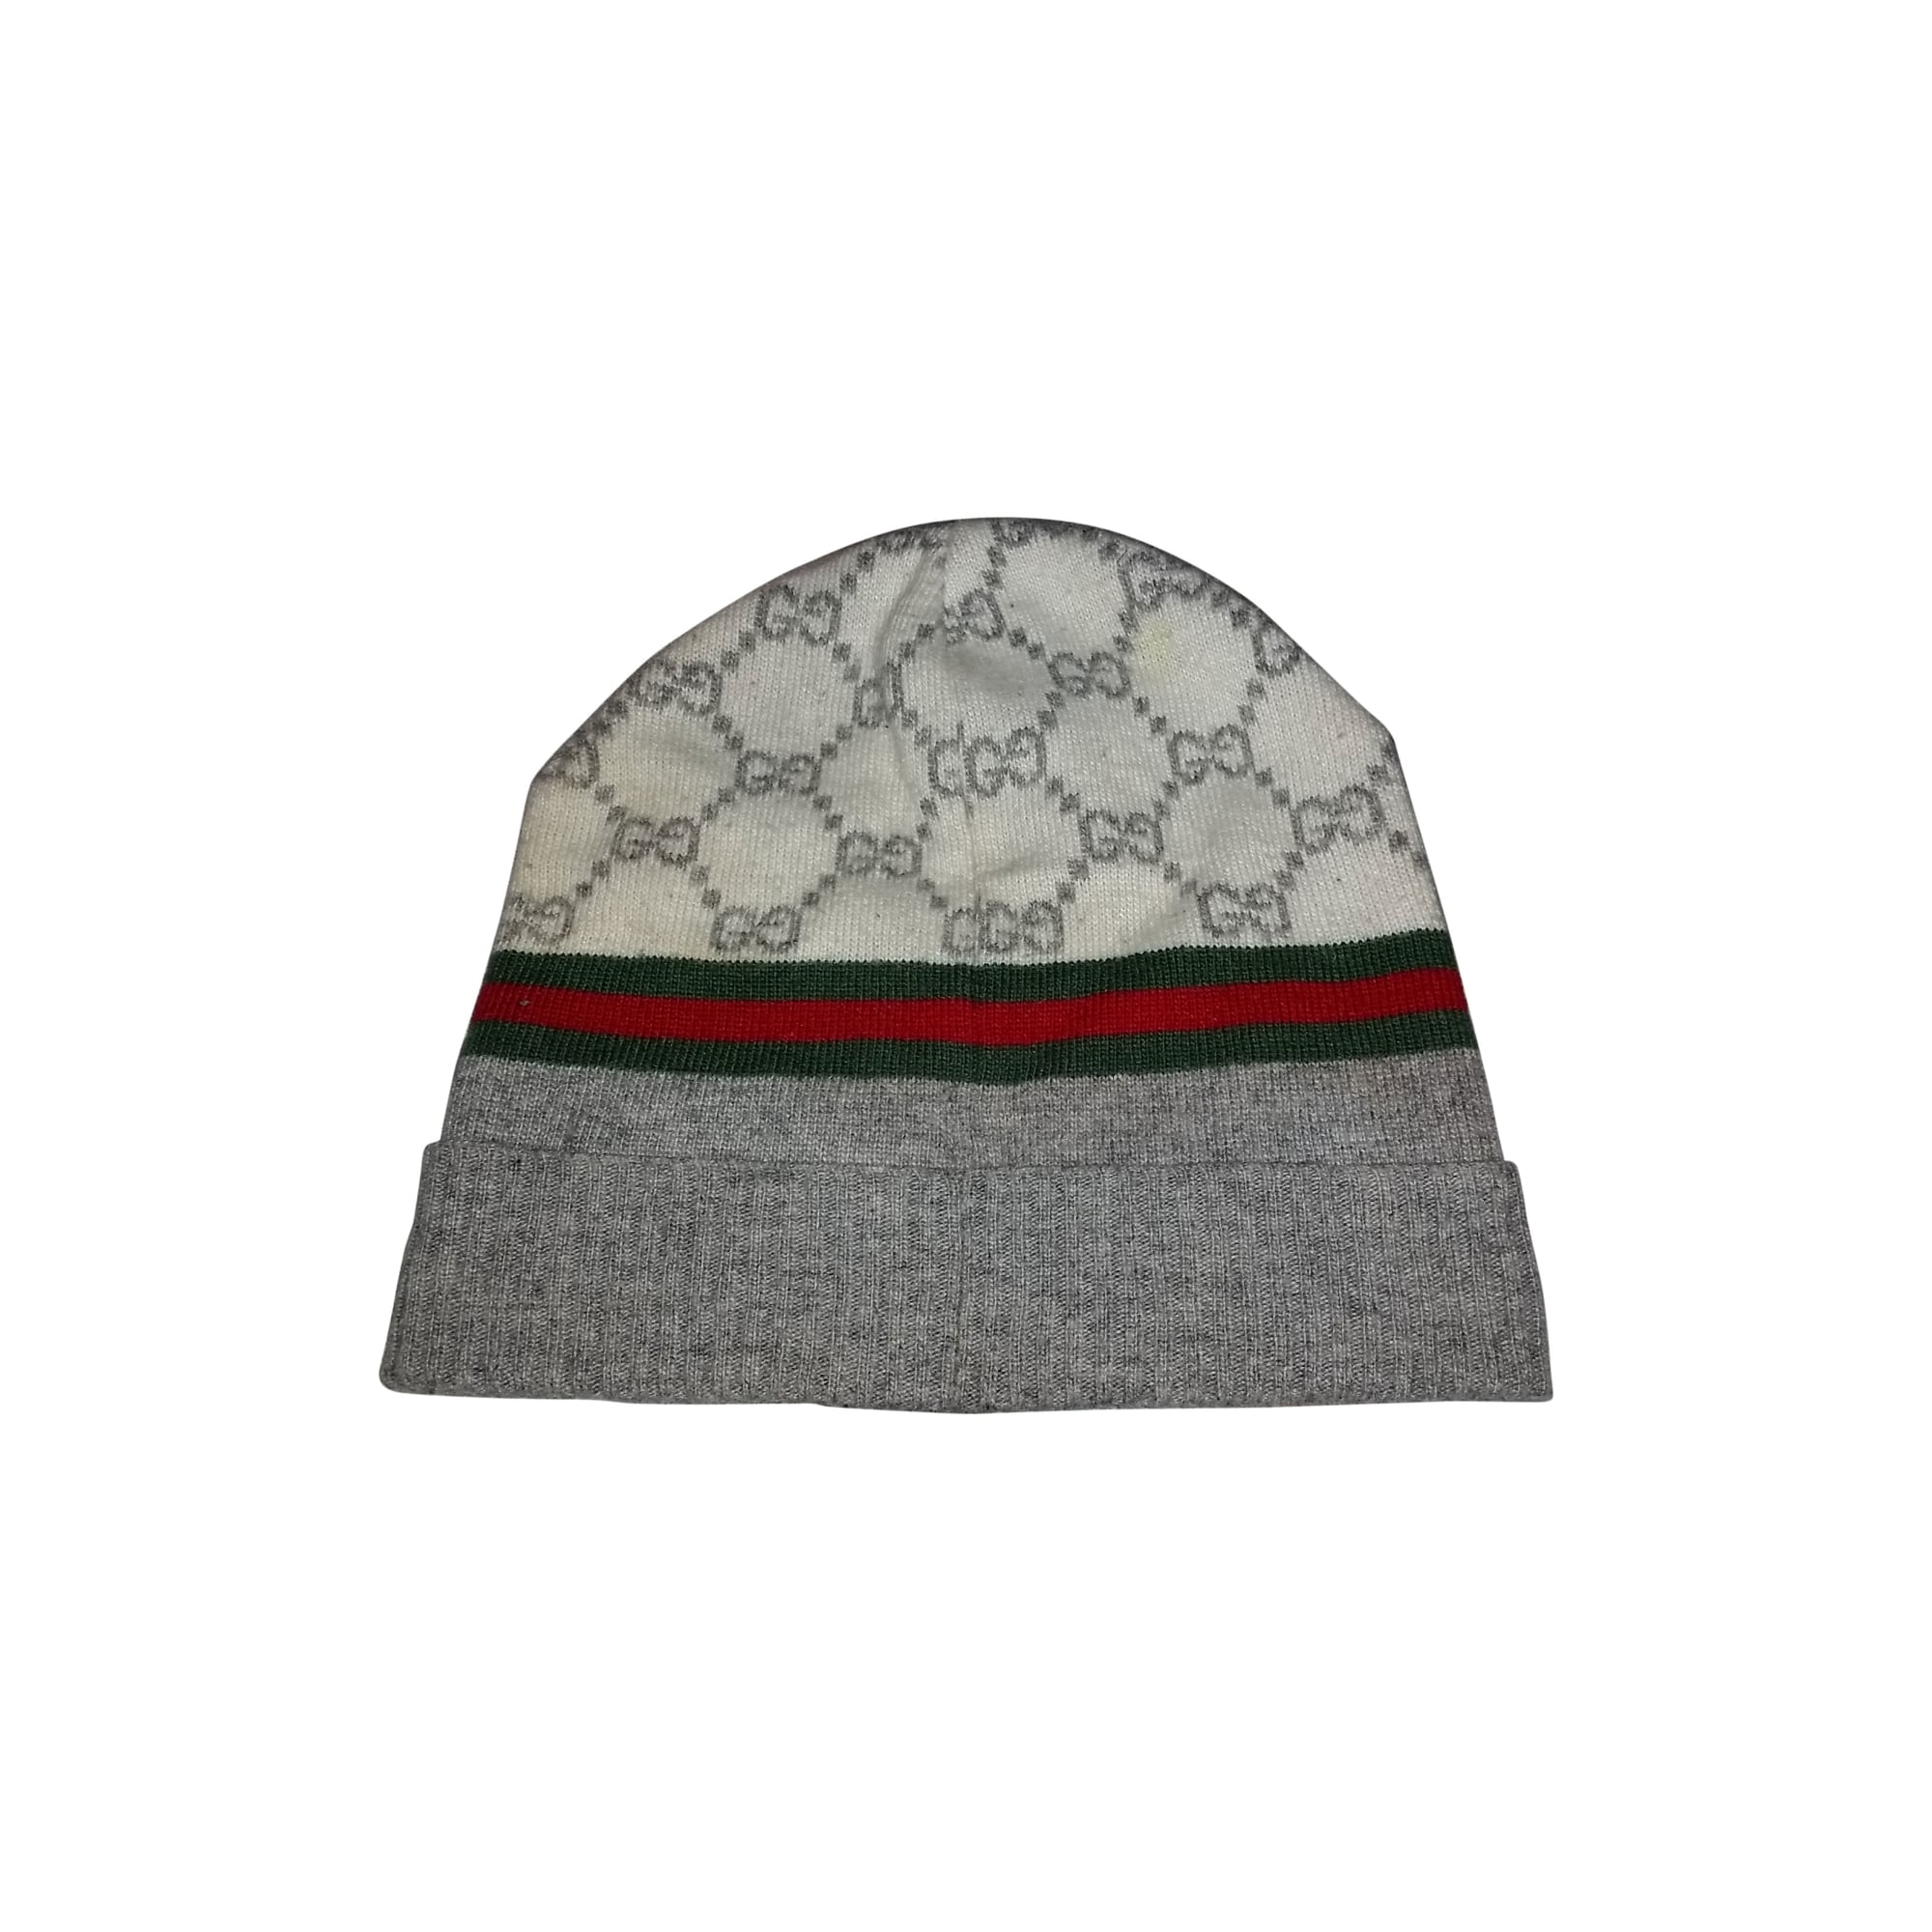 9fe043cd3523 Bonnet GUCCI Taille unique blanc - 3029248